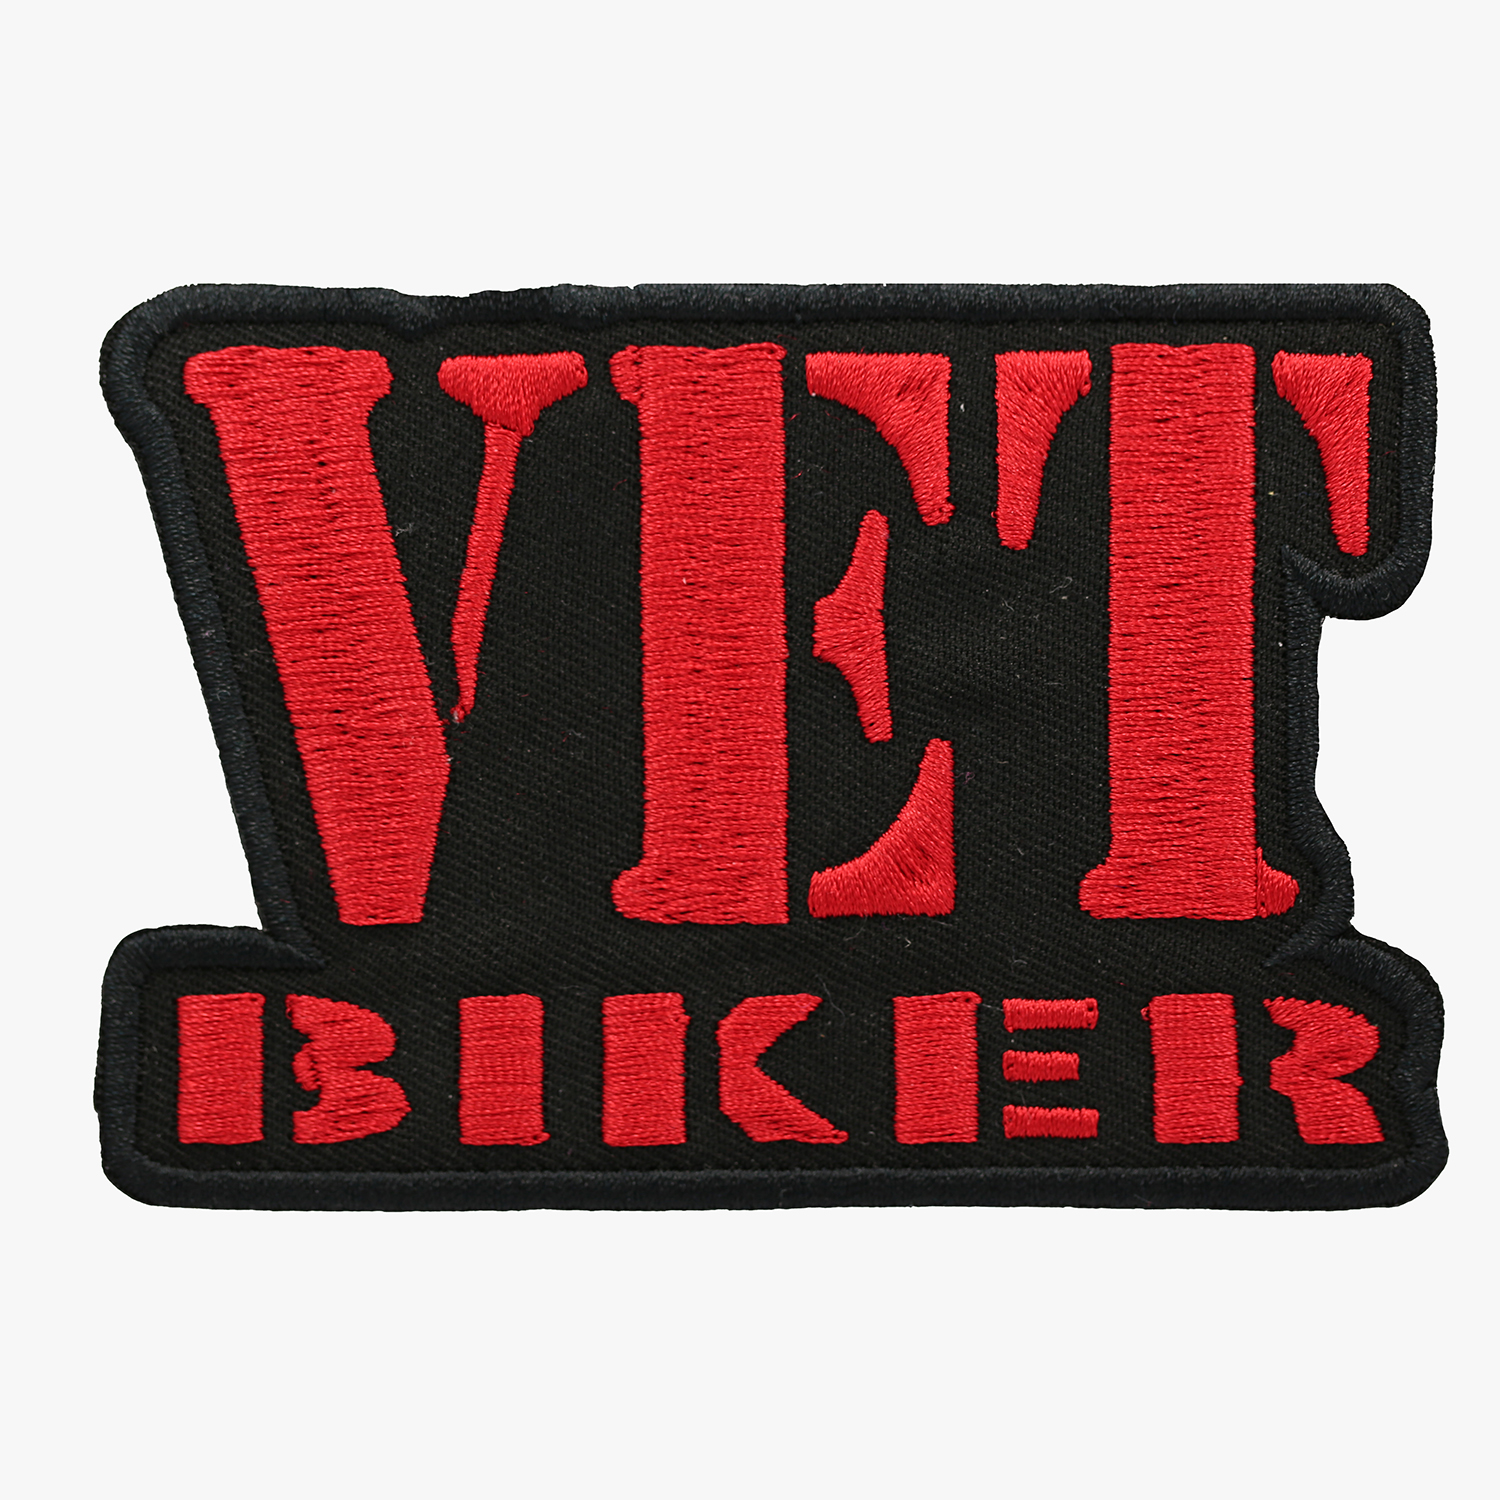 Vet Biker Motorcycle Club Embroidered Vest Patch